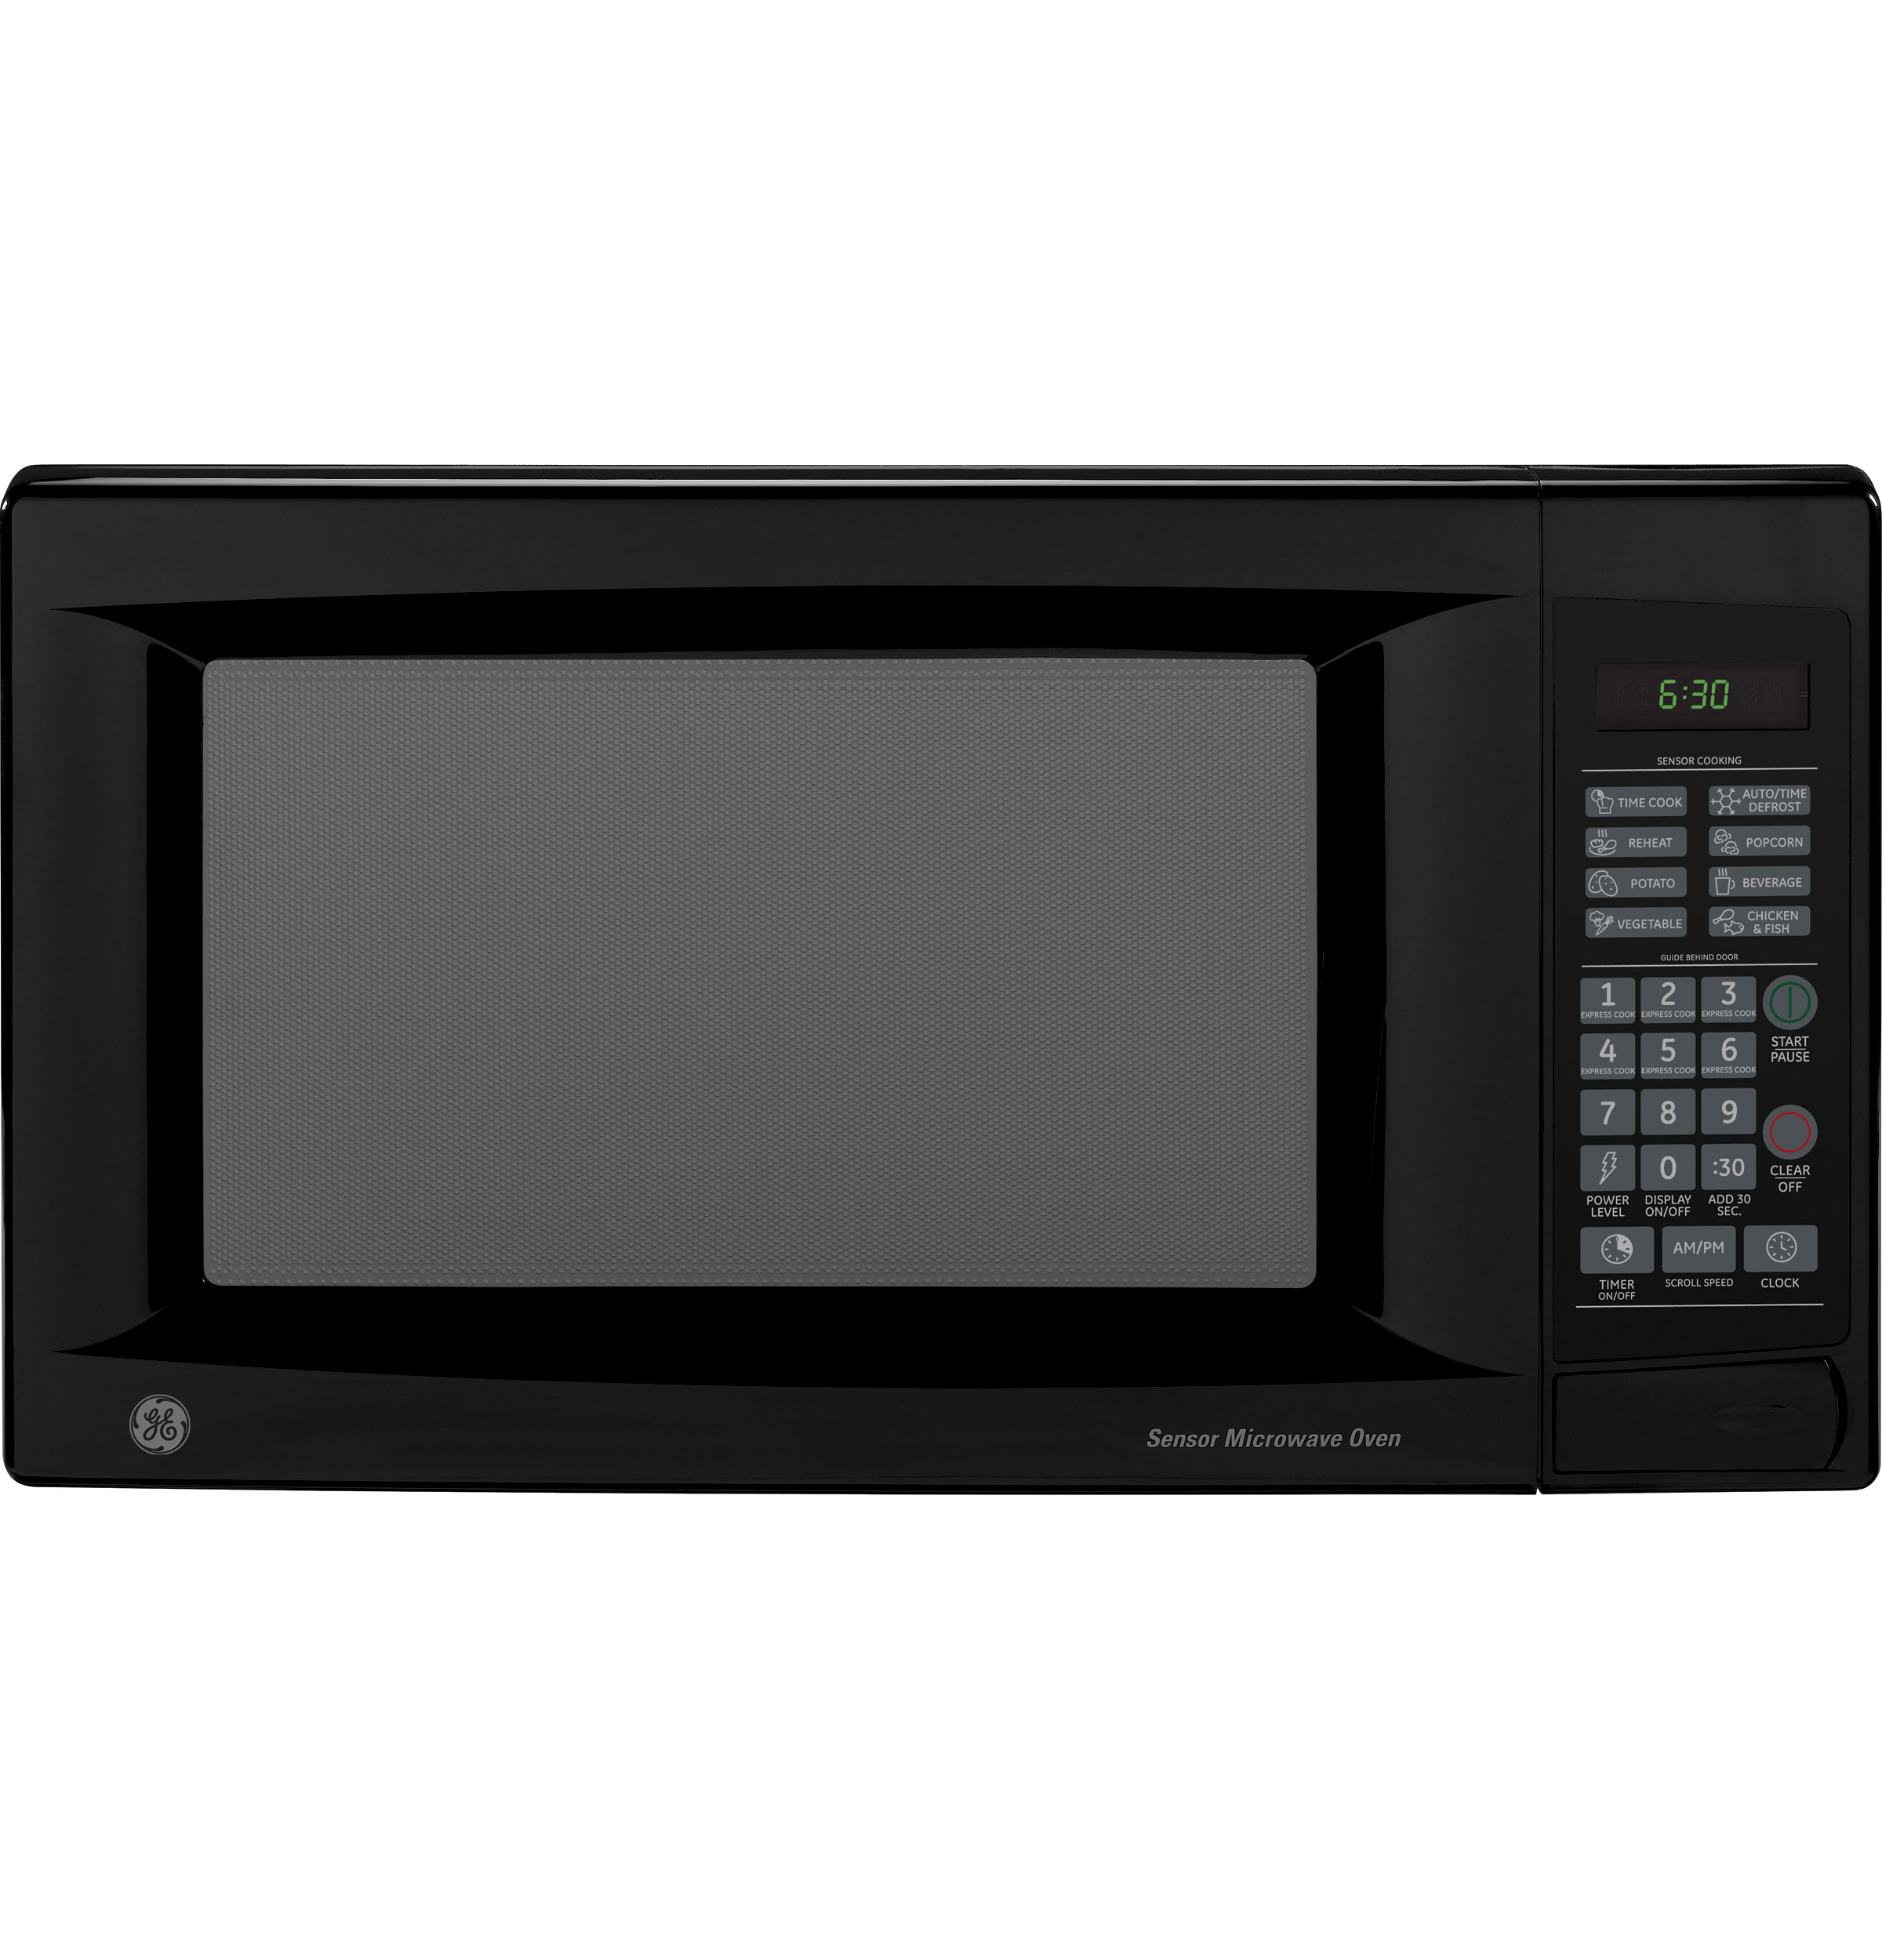 cu microwave countertops parkers oven ft ge capacity appliance reviews dispatcher countertop